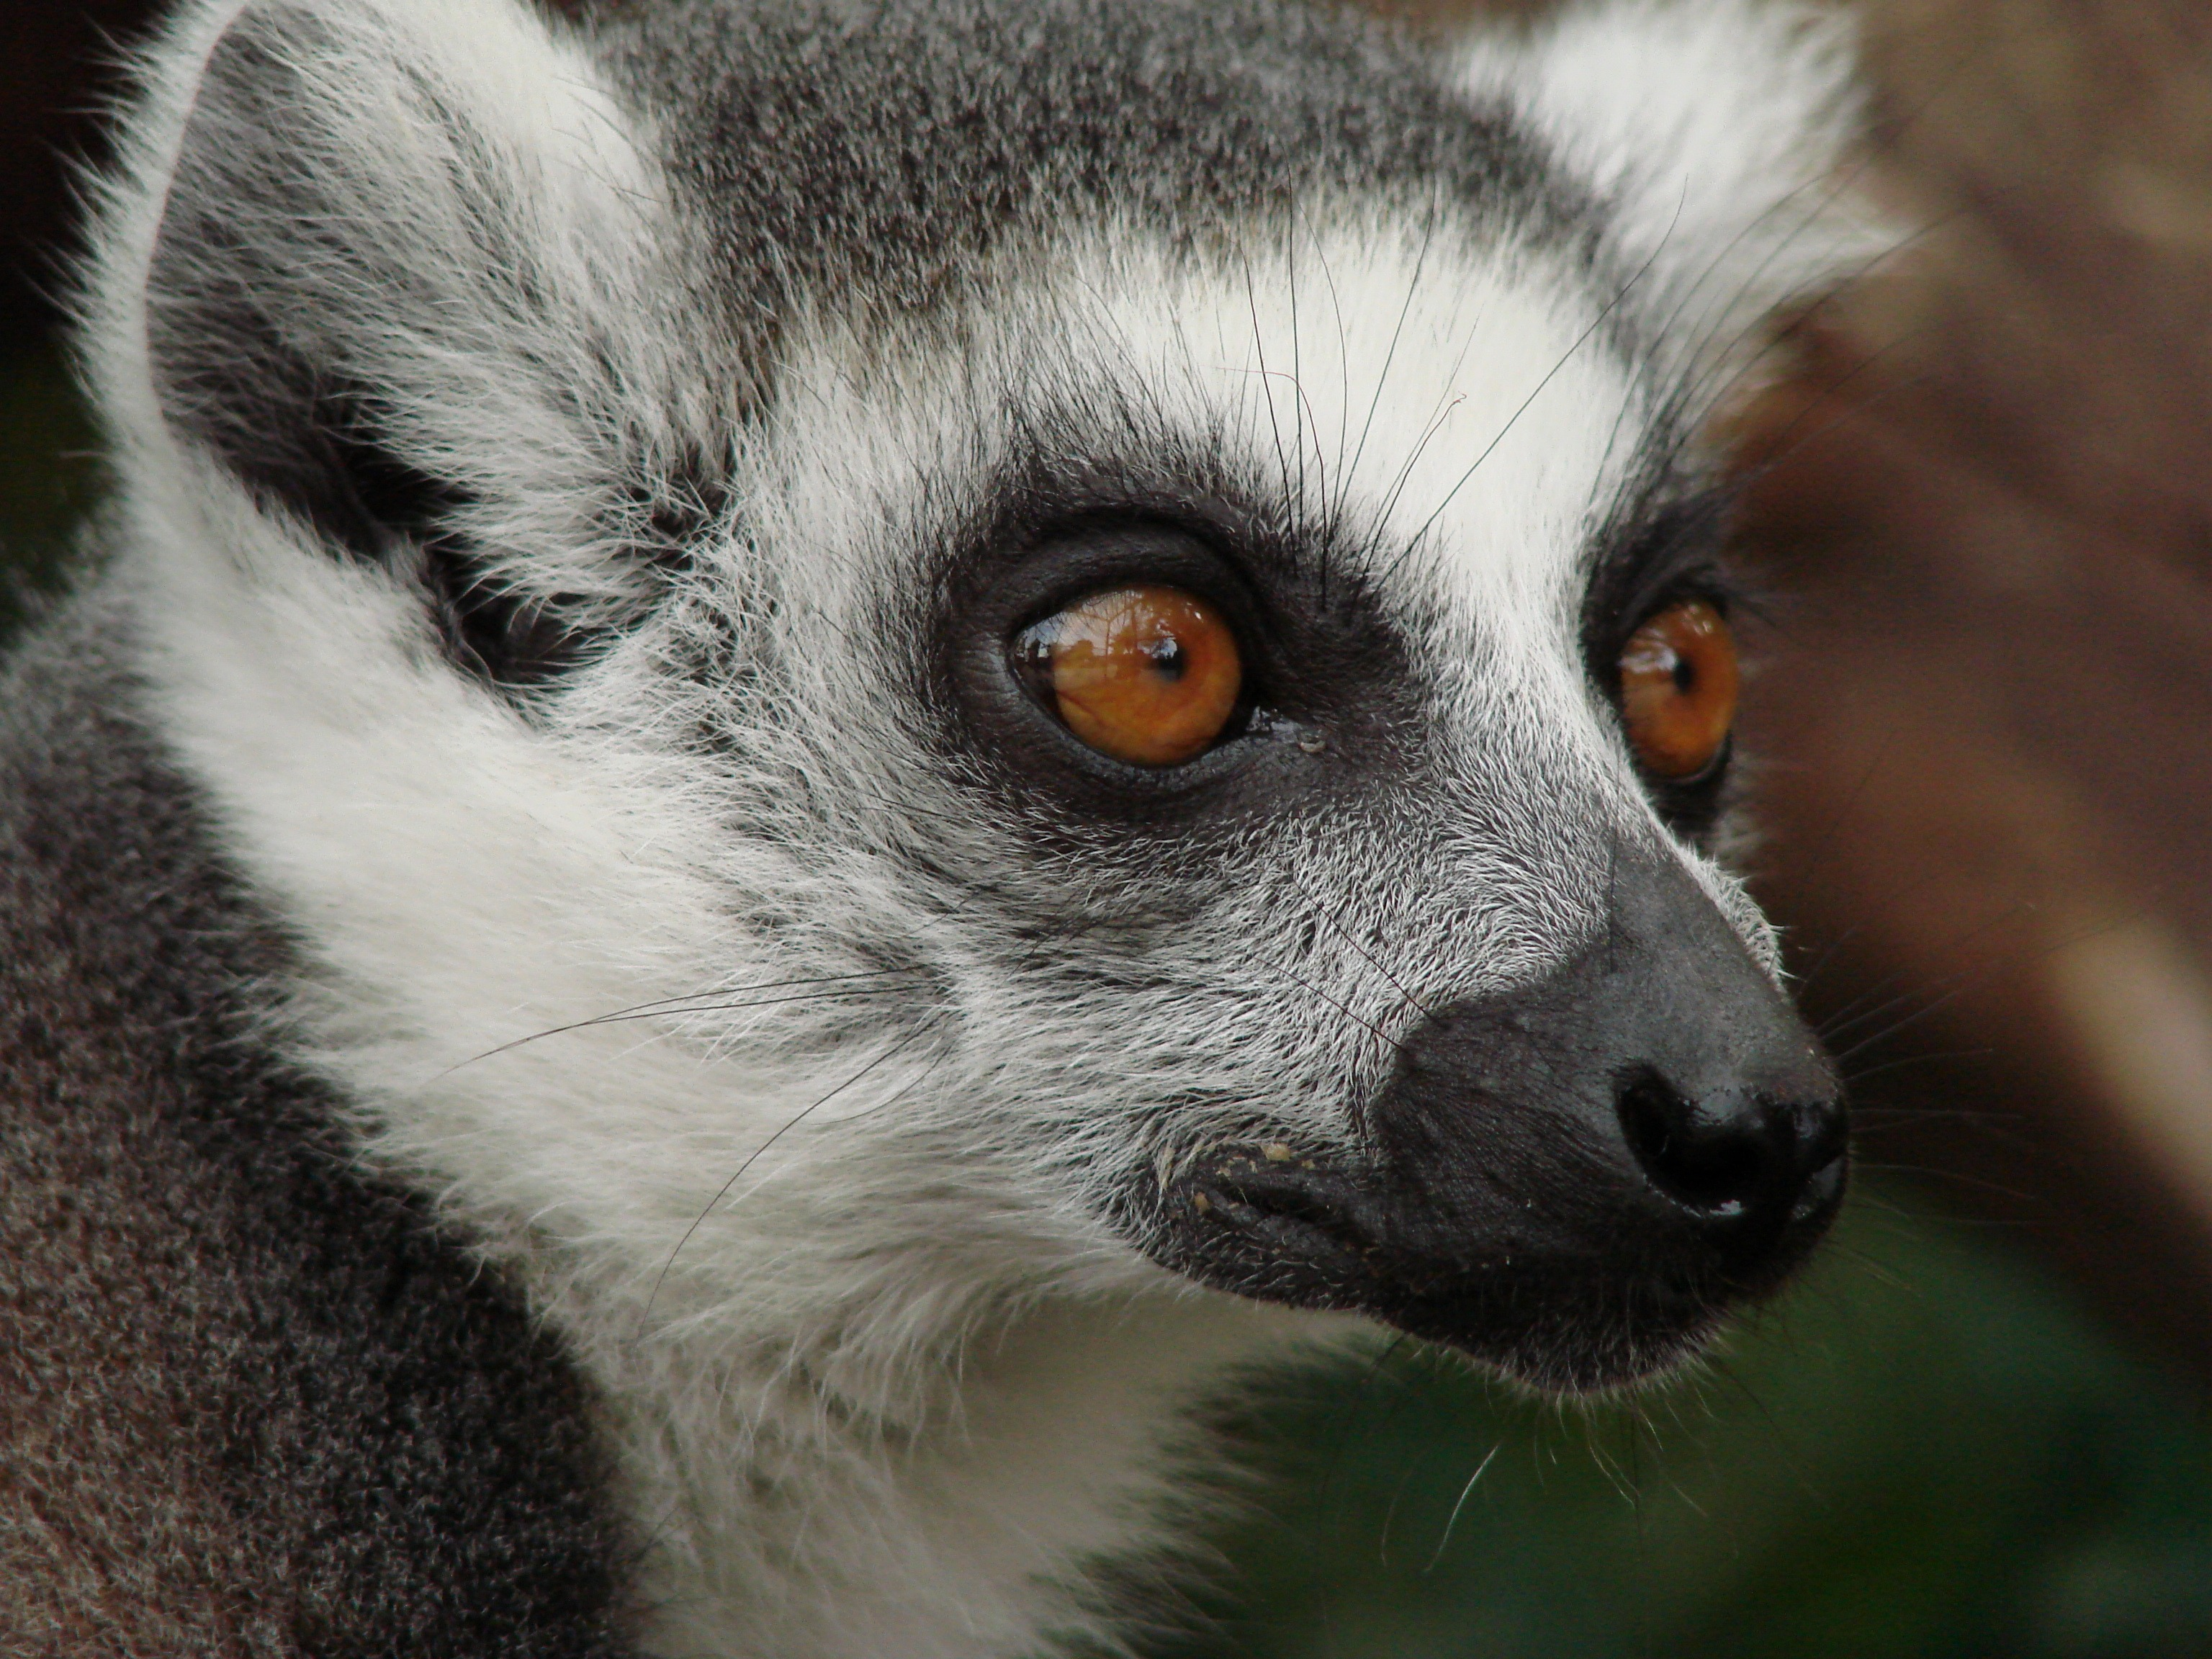 50785 download wallpaper Animals, Lemur, Muzzle, Sight, Opinion, Spotted, Spotty screensavers and pictures for free